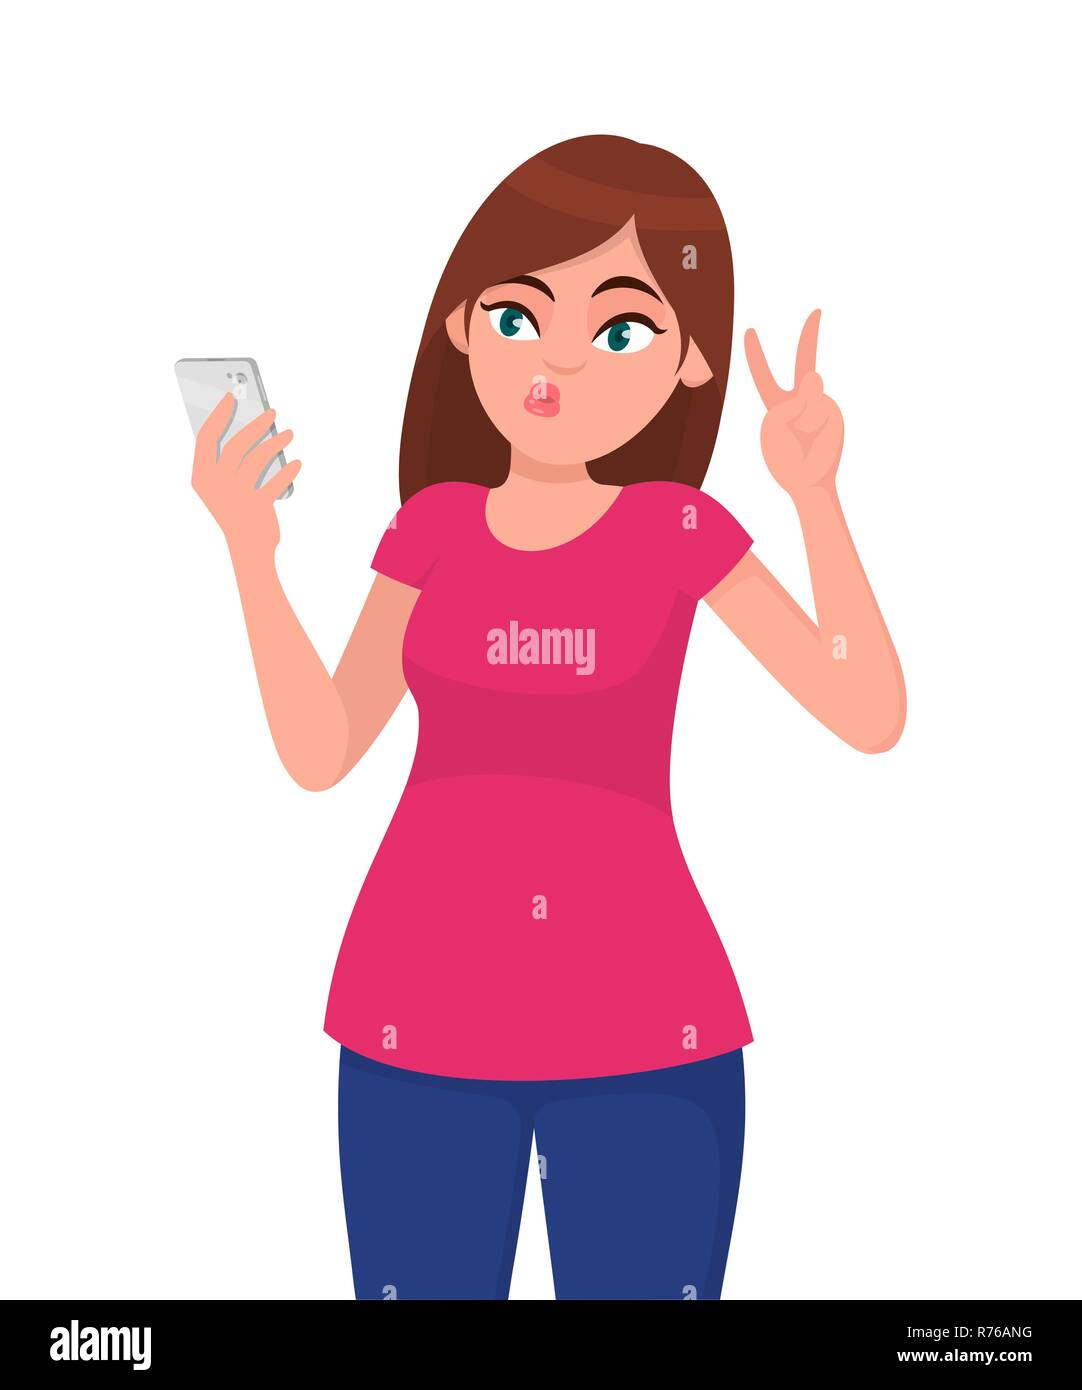 Beautiful young woman taking selfie with smartphone and gesturing victory, V or peace sign. Modern lifestyle,  human emotions and body language concep - Stock Vector